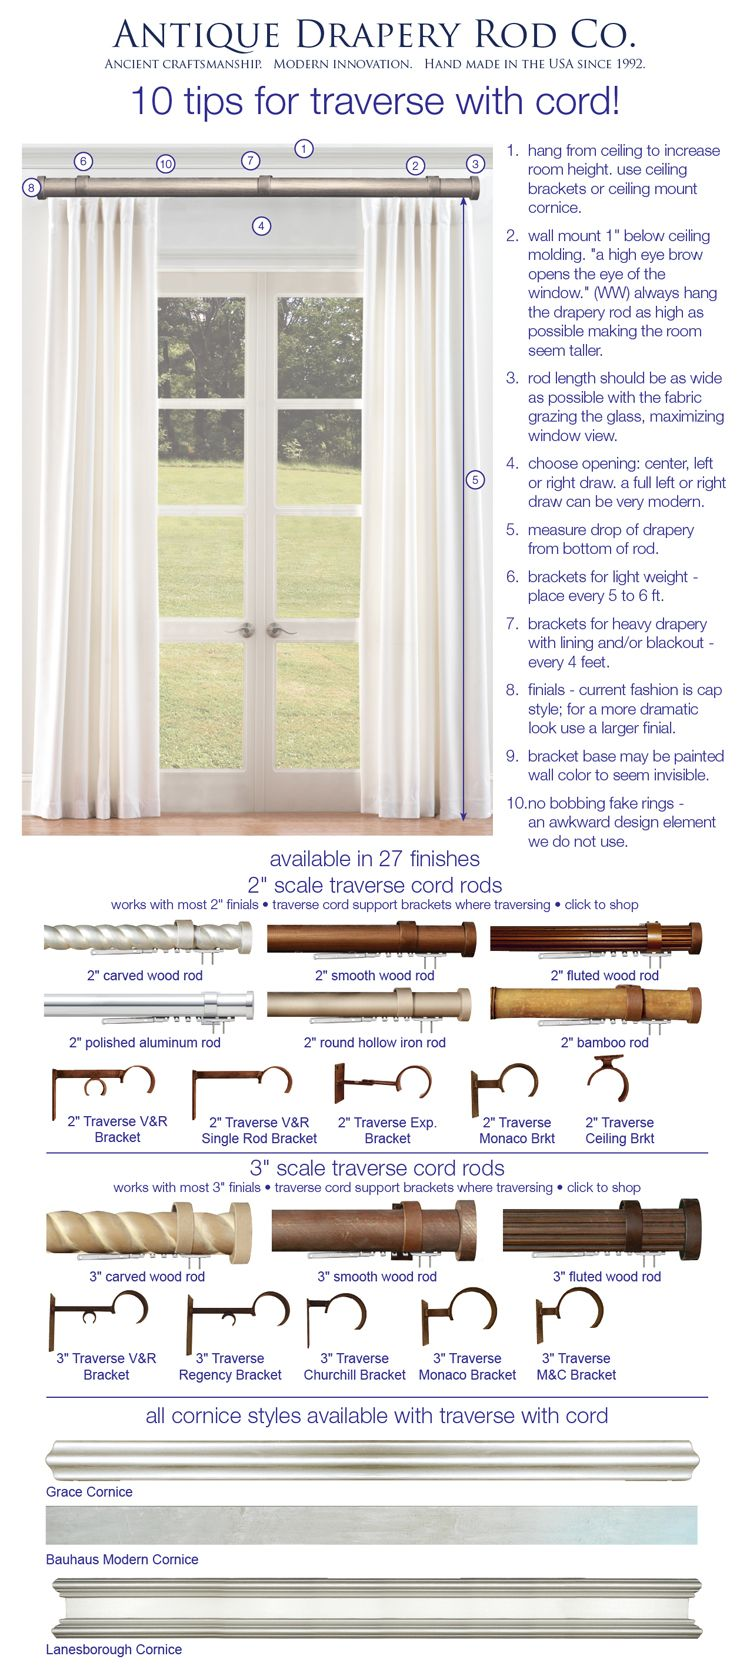 introducing antique drapery rodu0027s new corded traverse rod this is perfect for the heaviest curtains